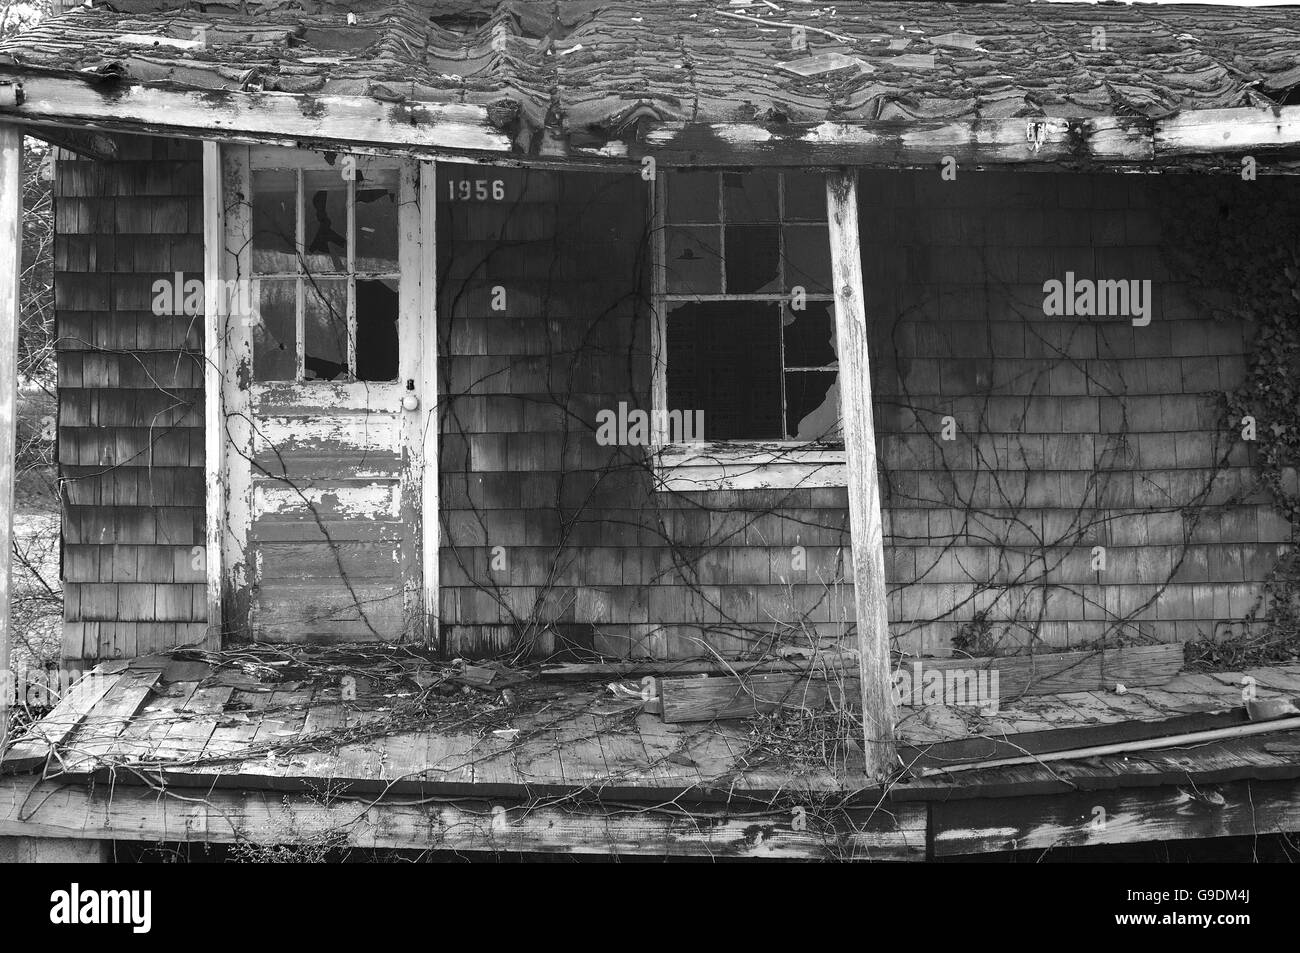 A dilapidated porch in Maryland. - Stock Image